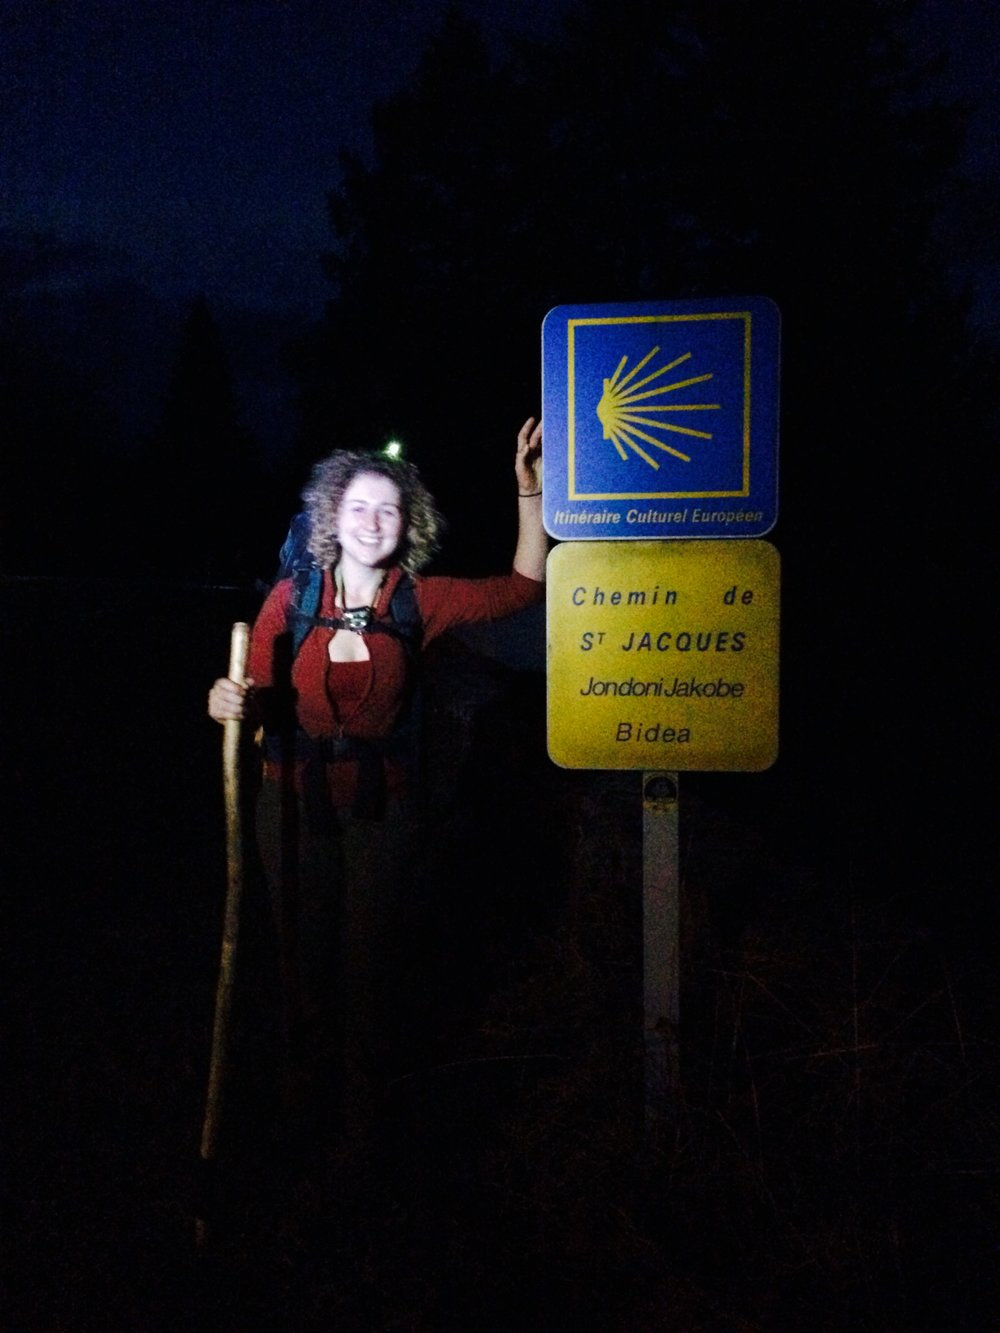 The start of the Camino!